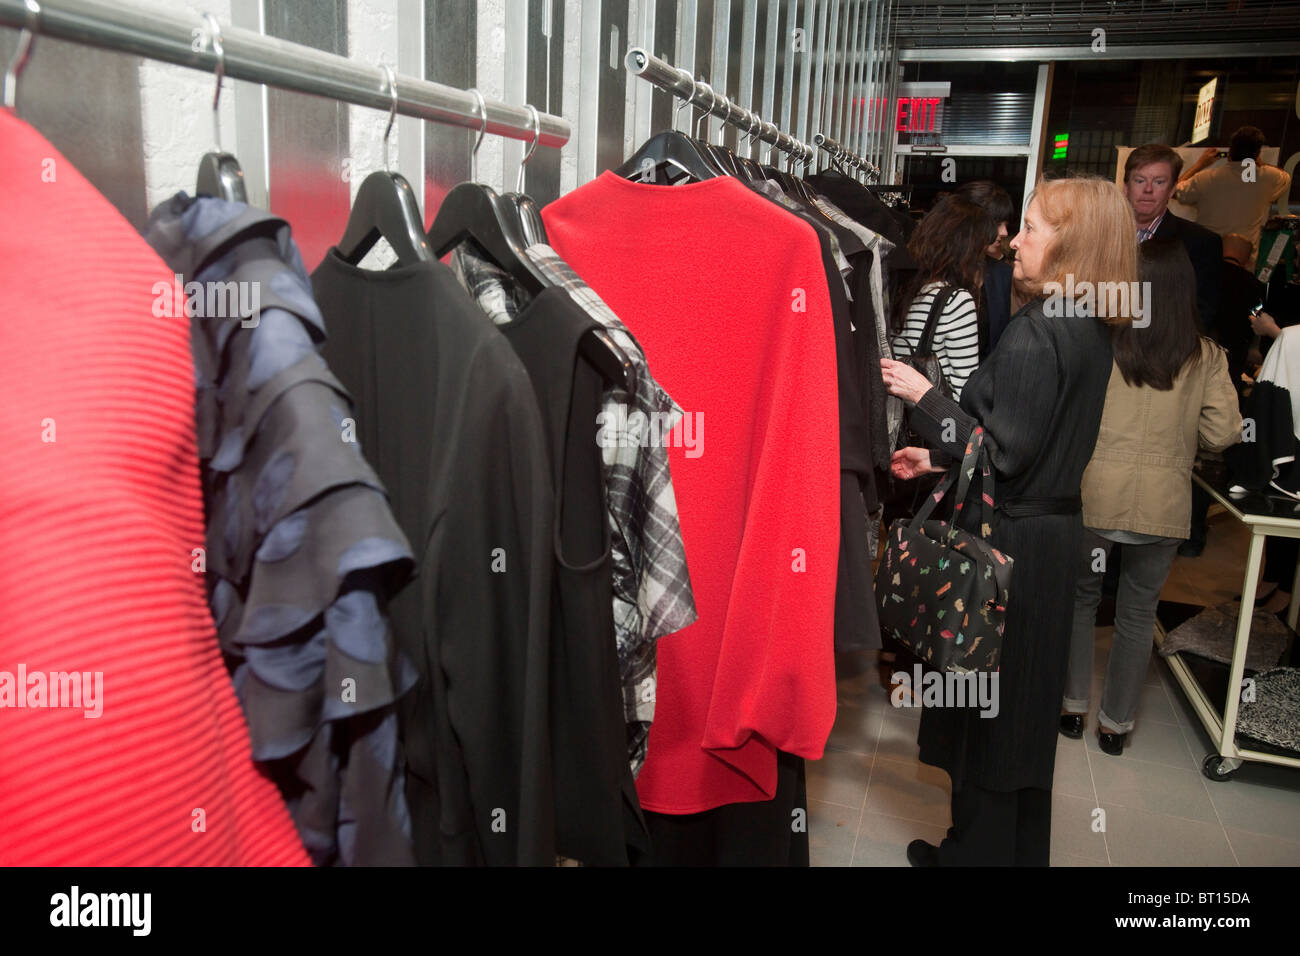 New York Fashion Industry Workers High Resolution Stock Photography And Images Alamy